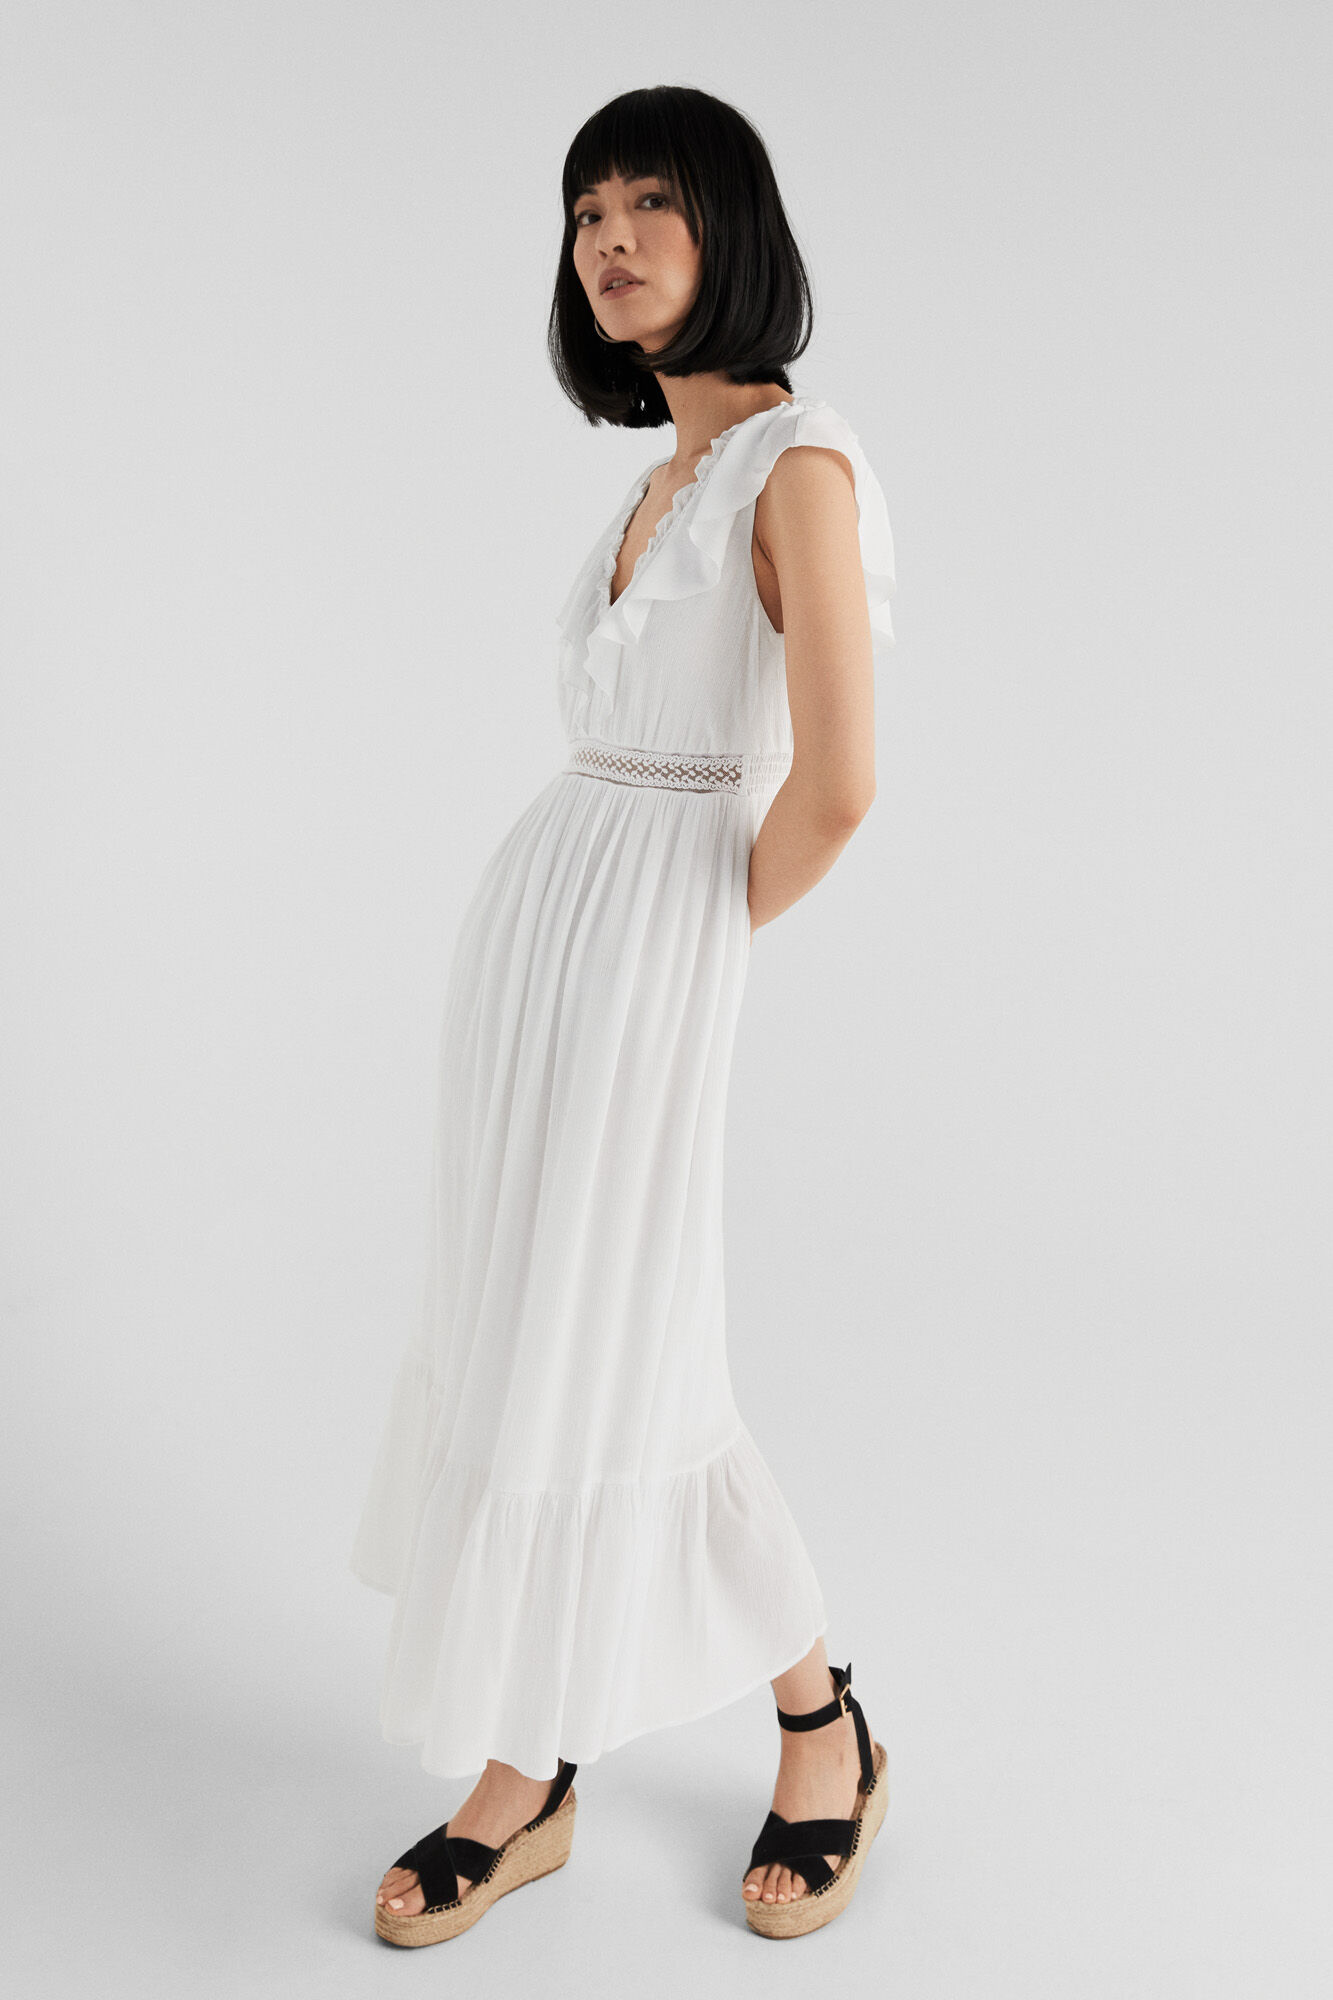 4cb95bae09 Springfield White cheesecloth dress natural